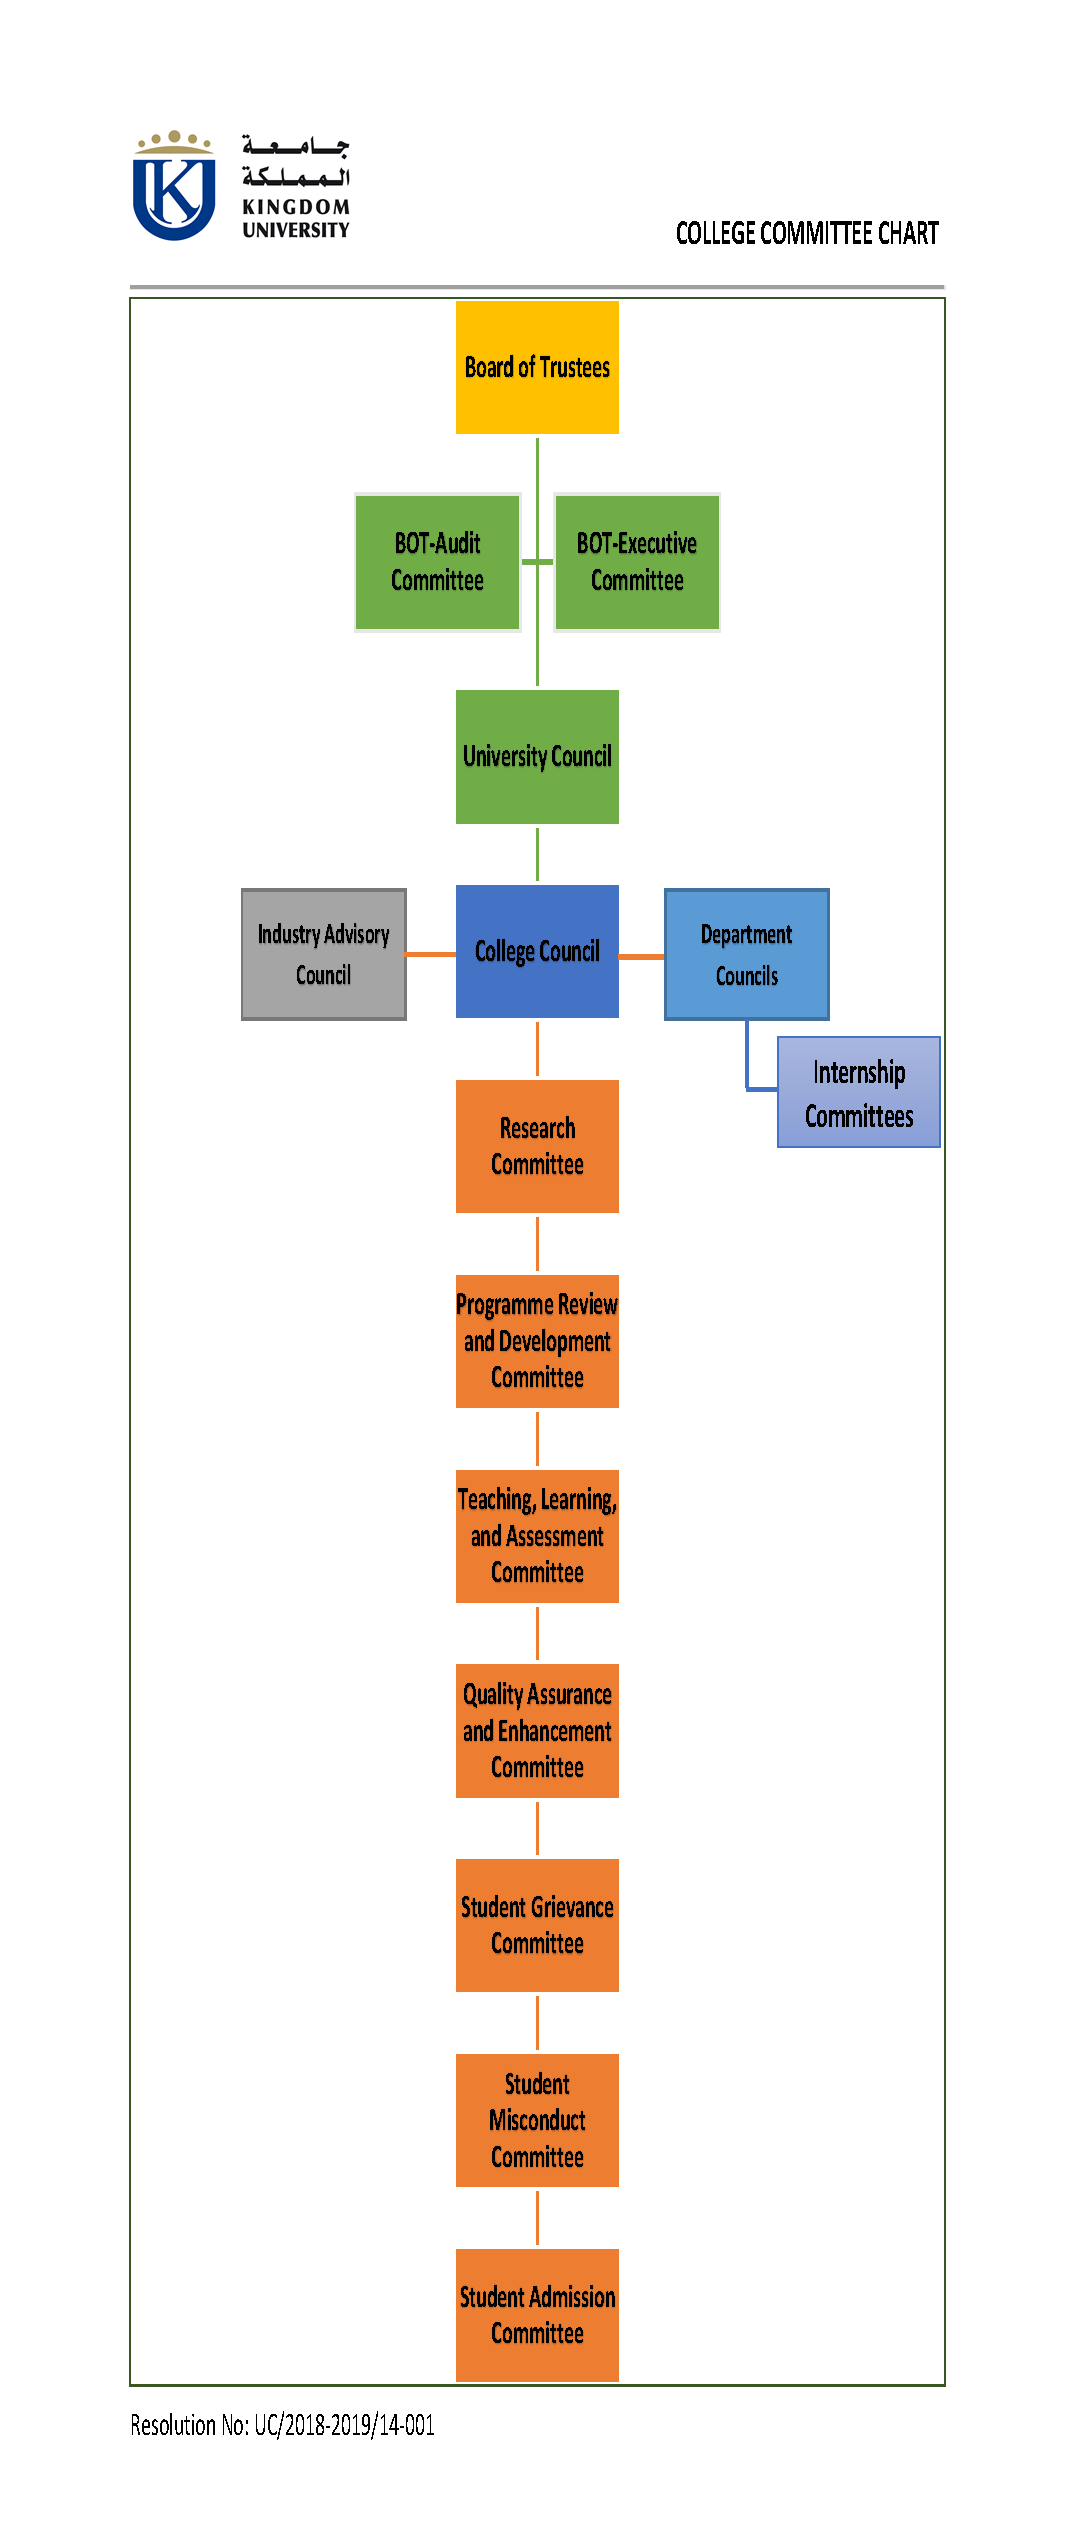 College Committee Chart